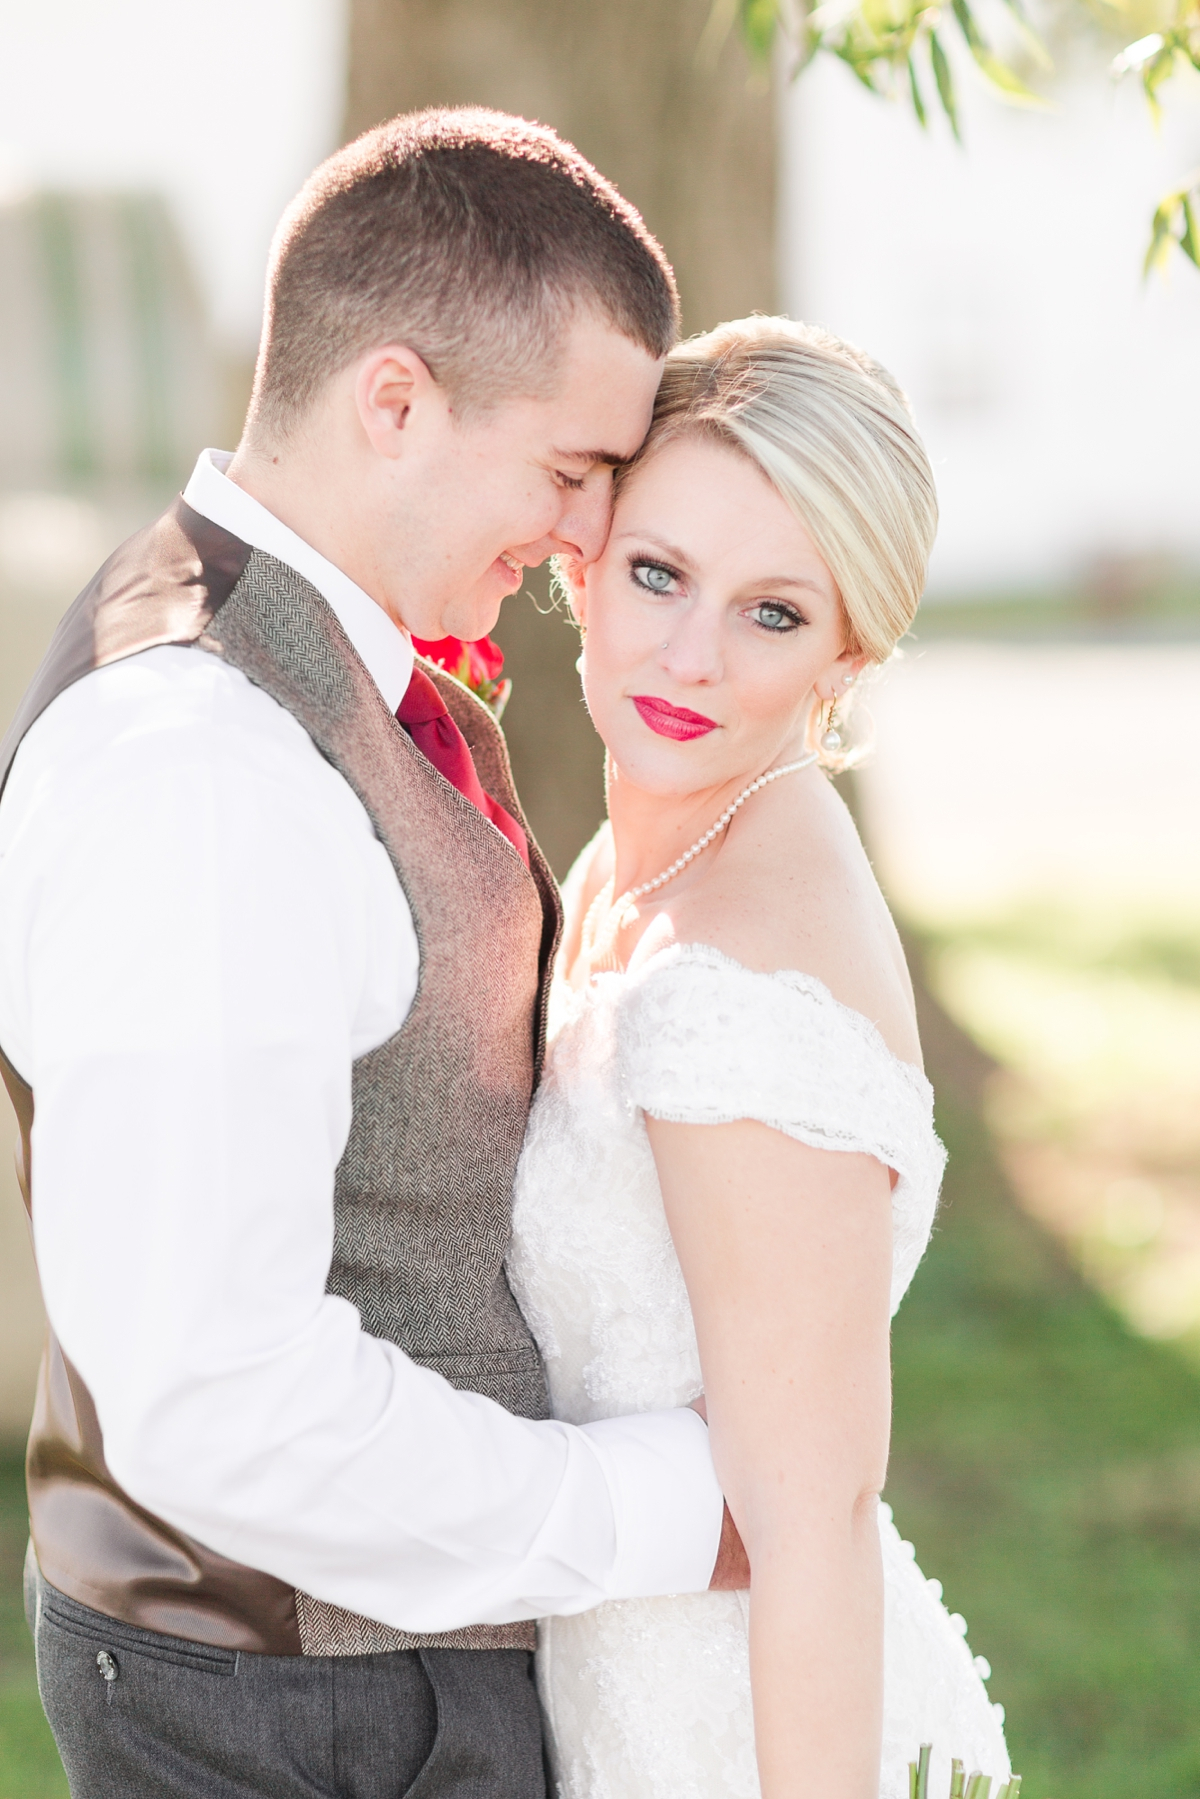 Bride and Groom Model Face Portraits with a pop of red lipstick and cranberry tie!  A Rustic Brandy Hill Farm Wedding in Culpeper, Virginia featuring accents of cranberry and gold! Photos by Katelyn James Photography